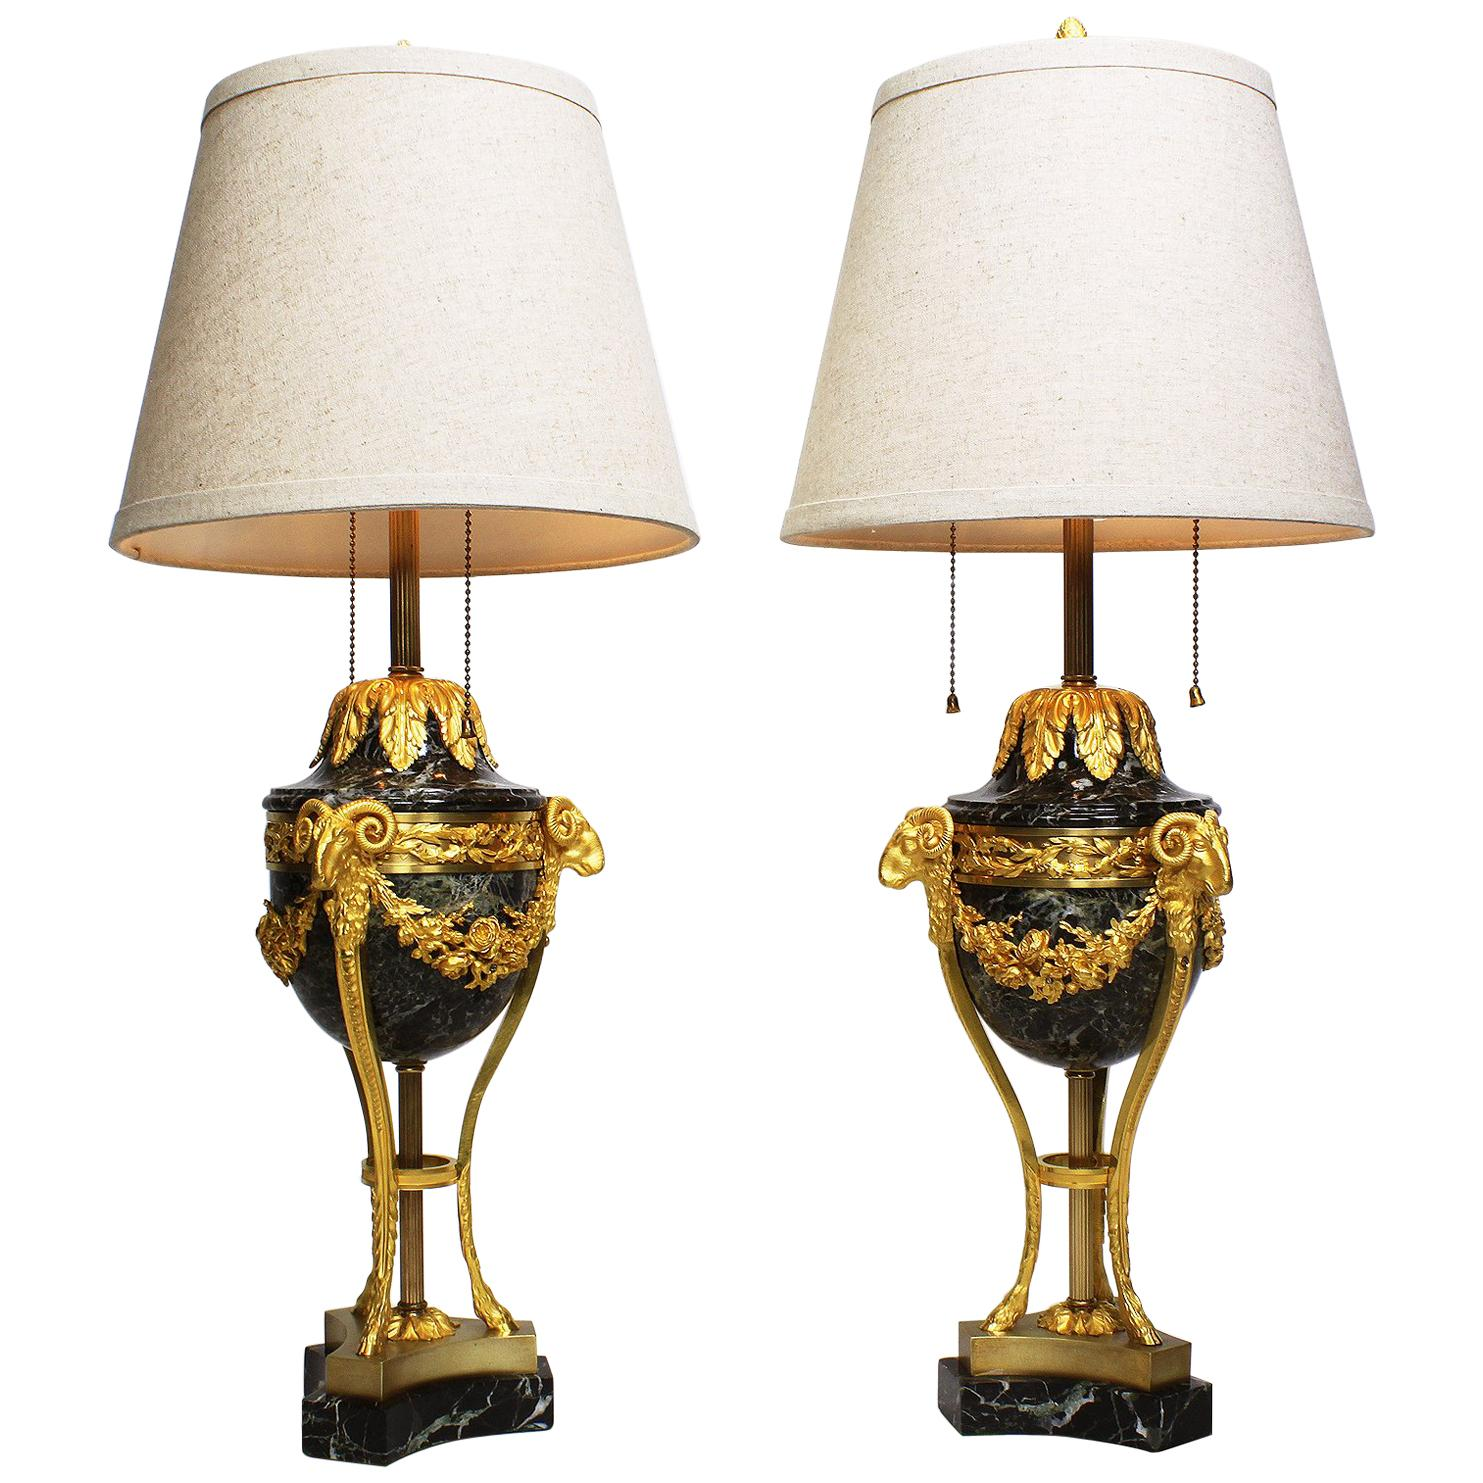 Pair of French 19th-20th Century Gilt-Bronze 'Ormolu' Mounted Urn Figural Lamps